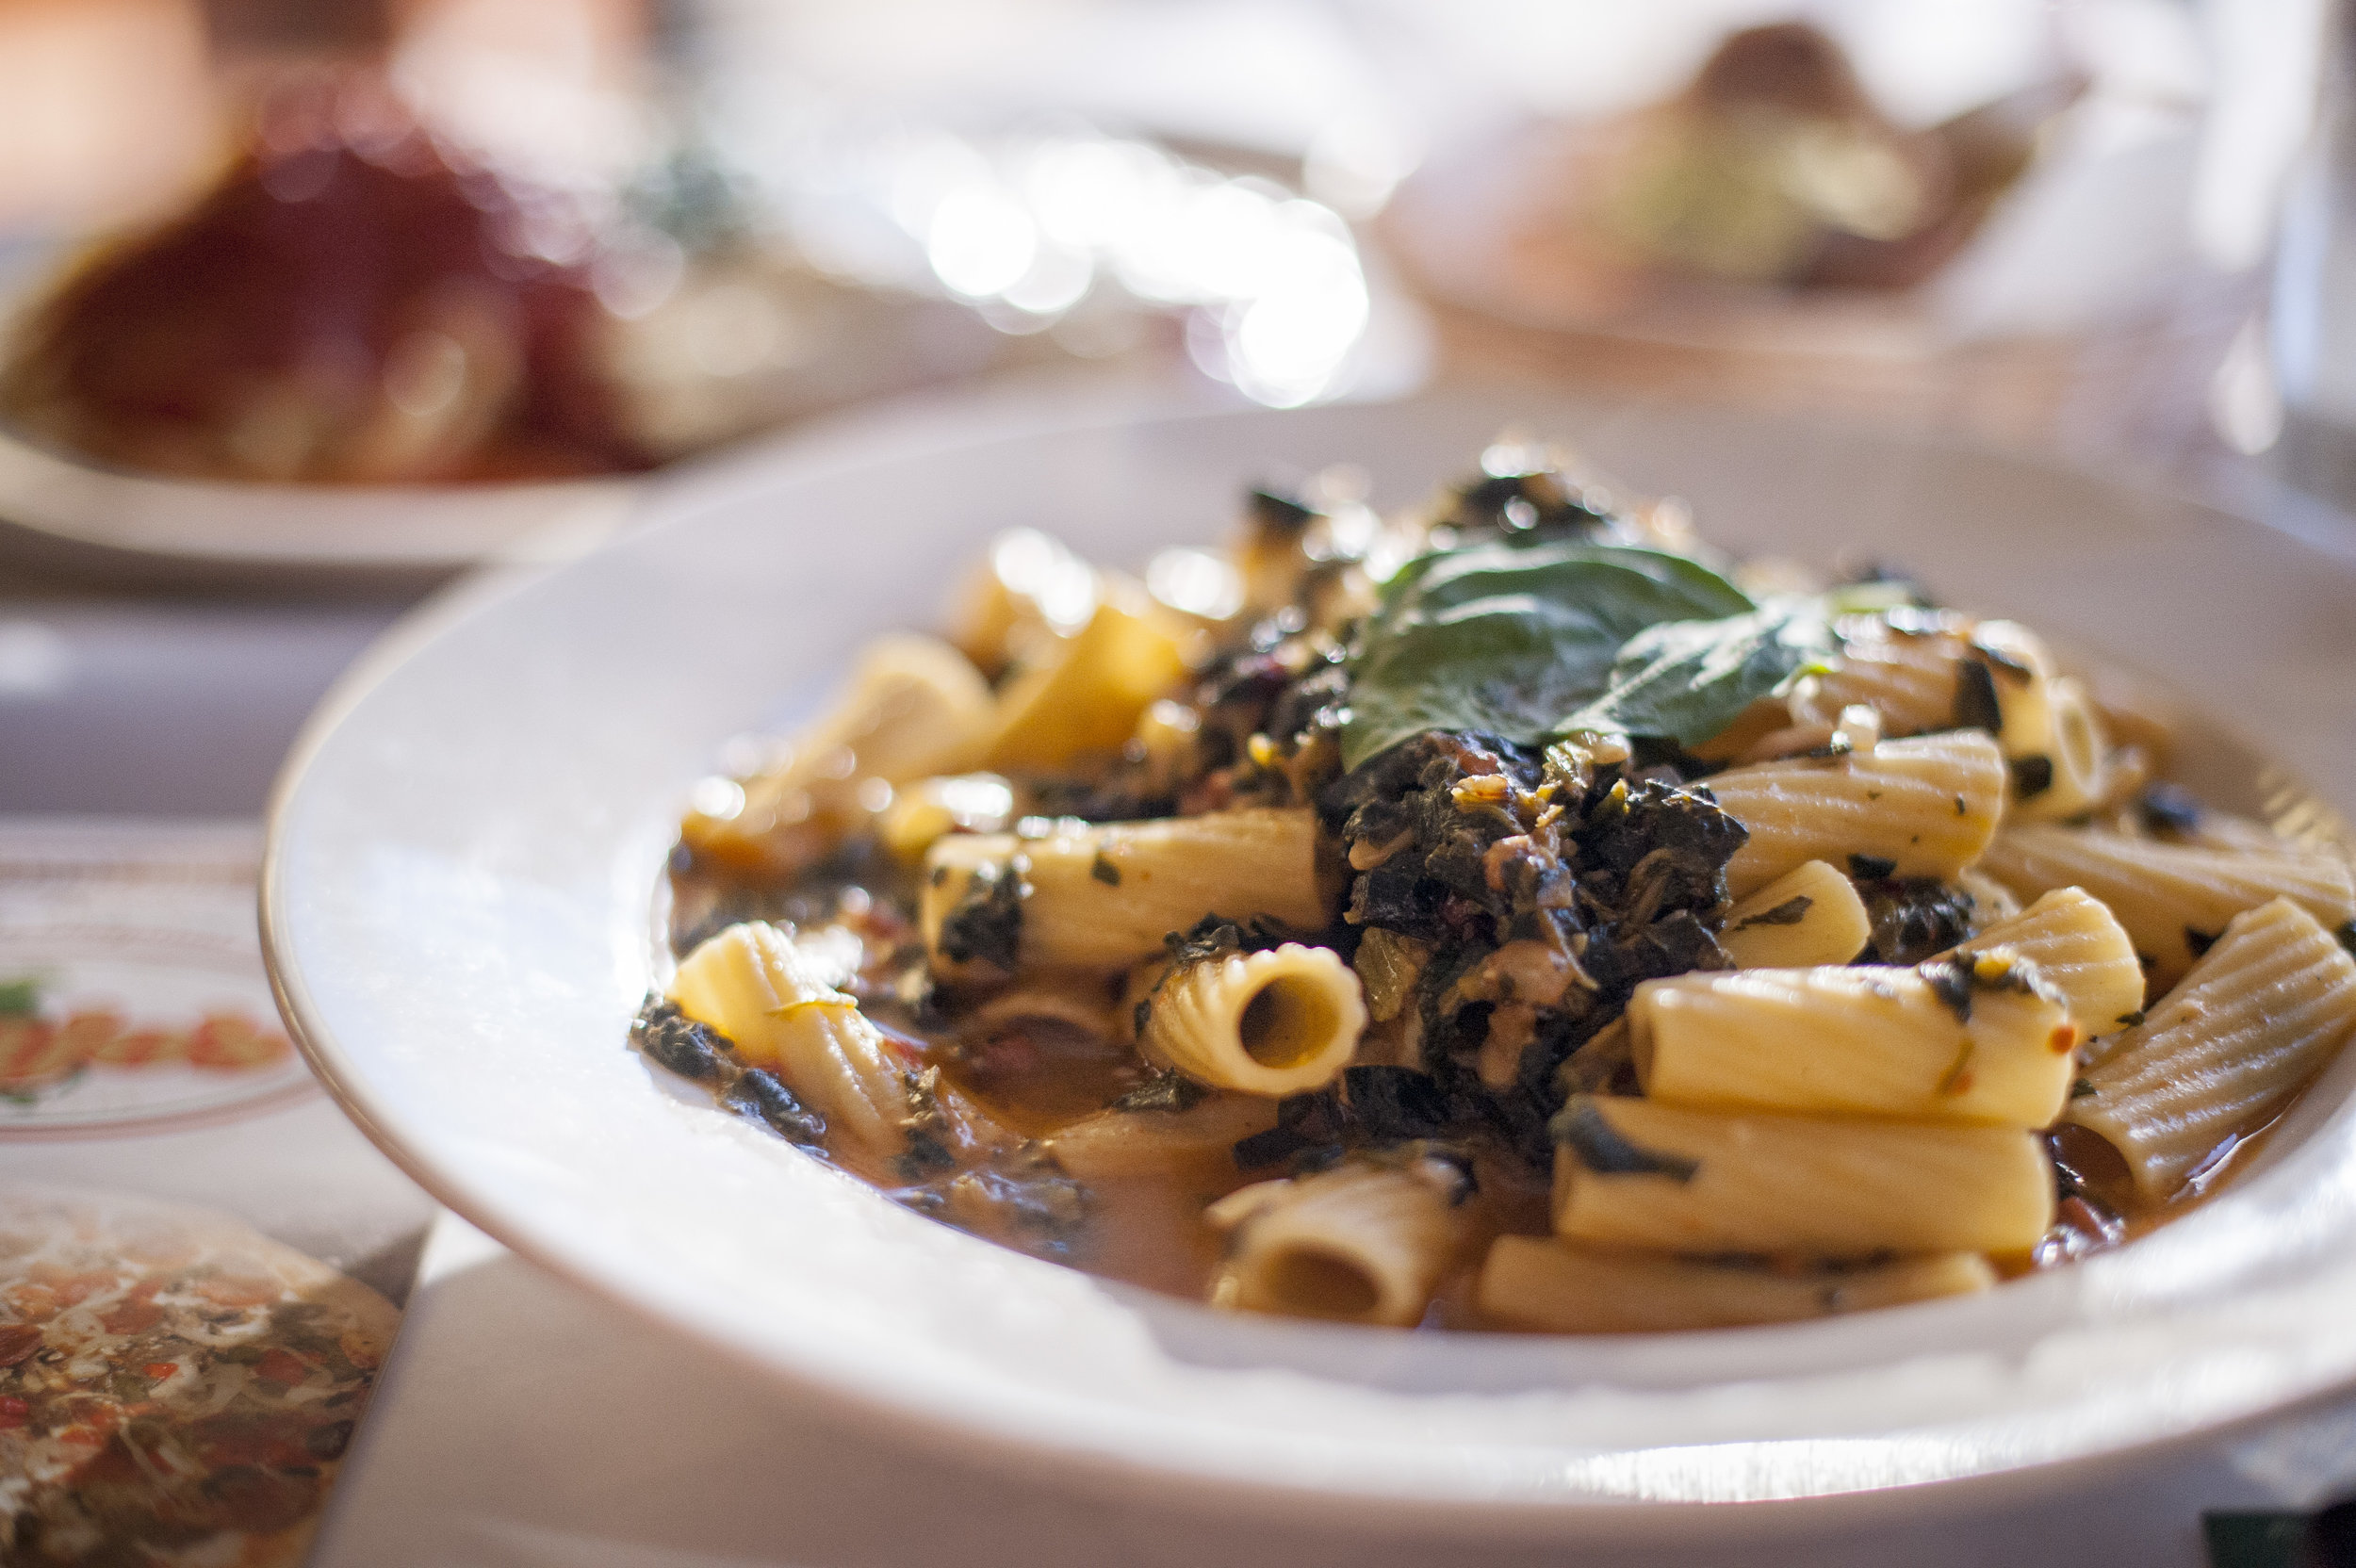 Rigatoni Alla Viajo's plates a chewy rigatoni pasta in a pomodoro white wine sauce with onions, raisins, spinach and pigtail nuts, coming together to marry the worlds of sweet, savory and nutty.